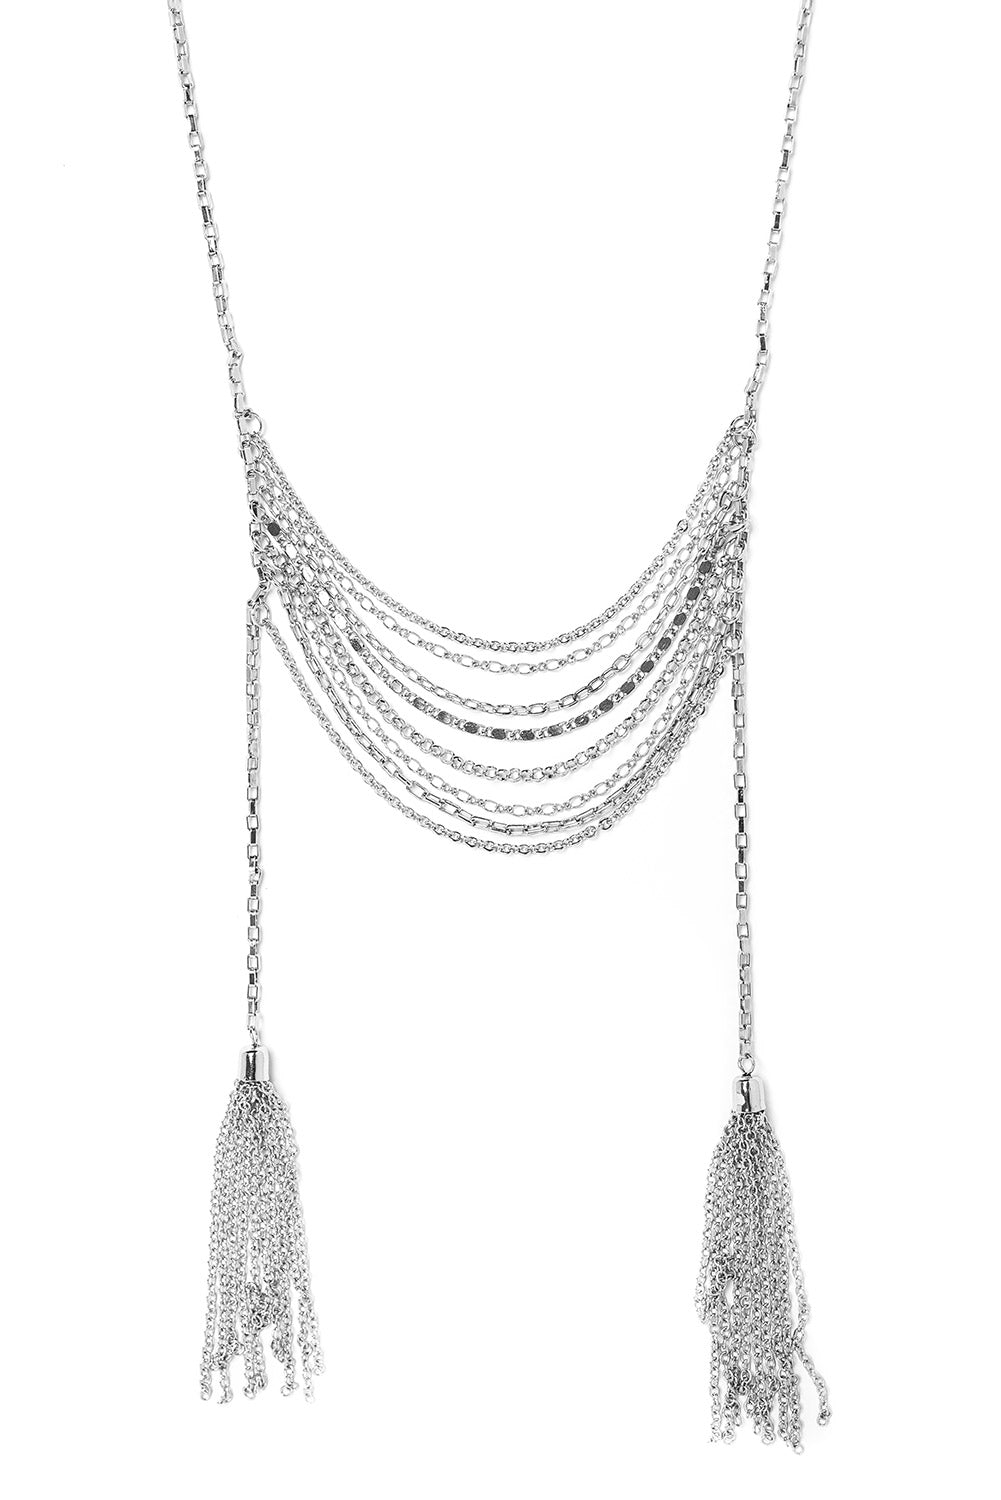 Type 2 Flapper Necklace